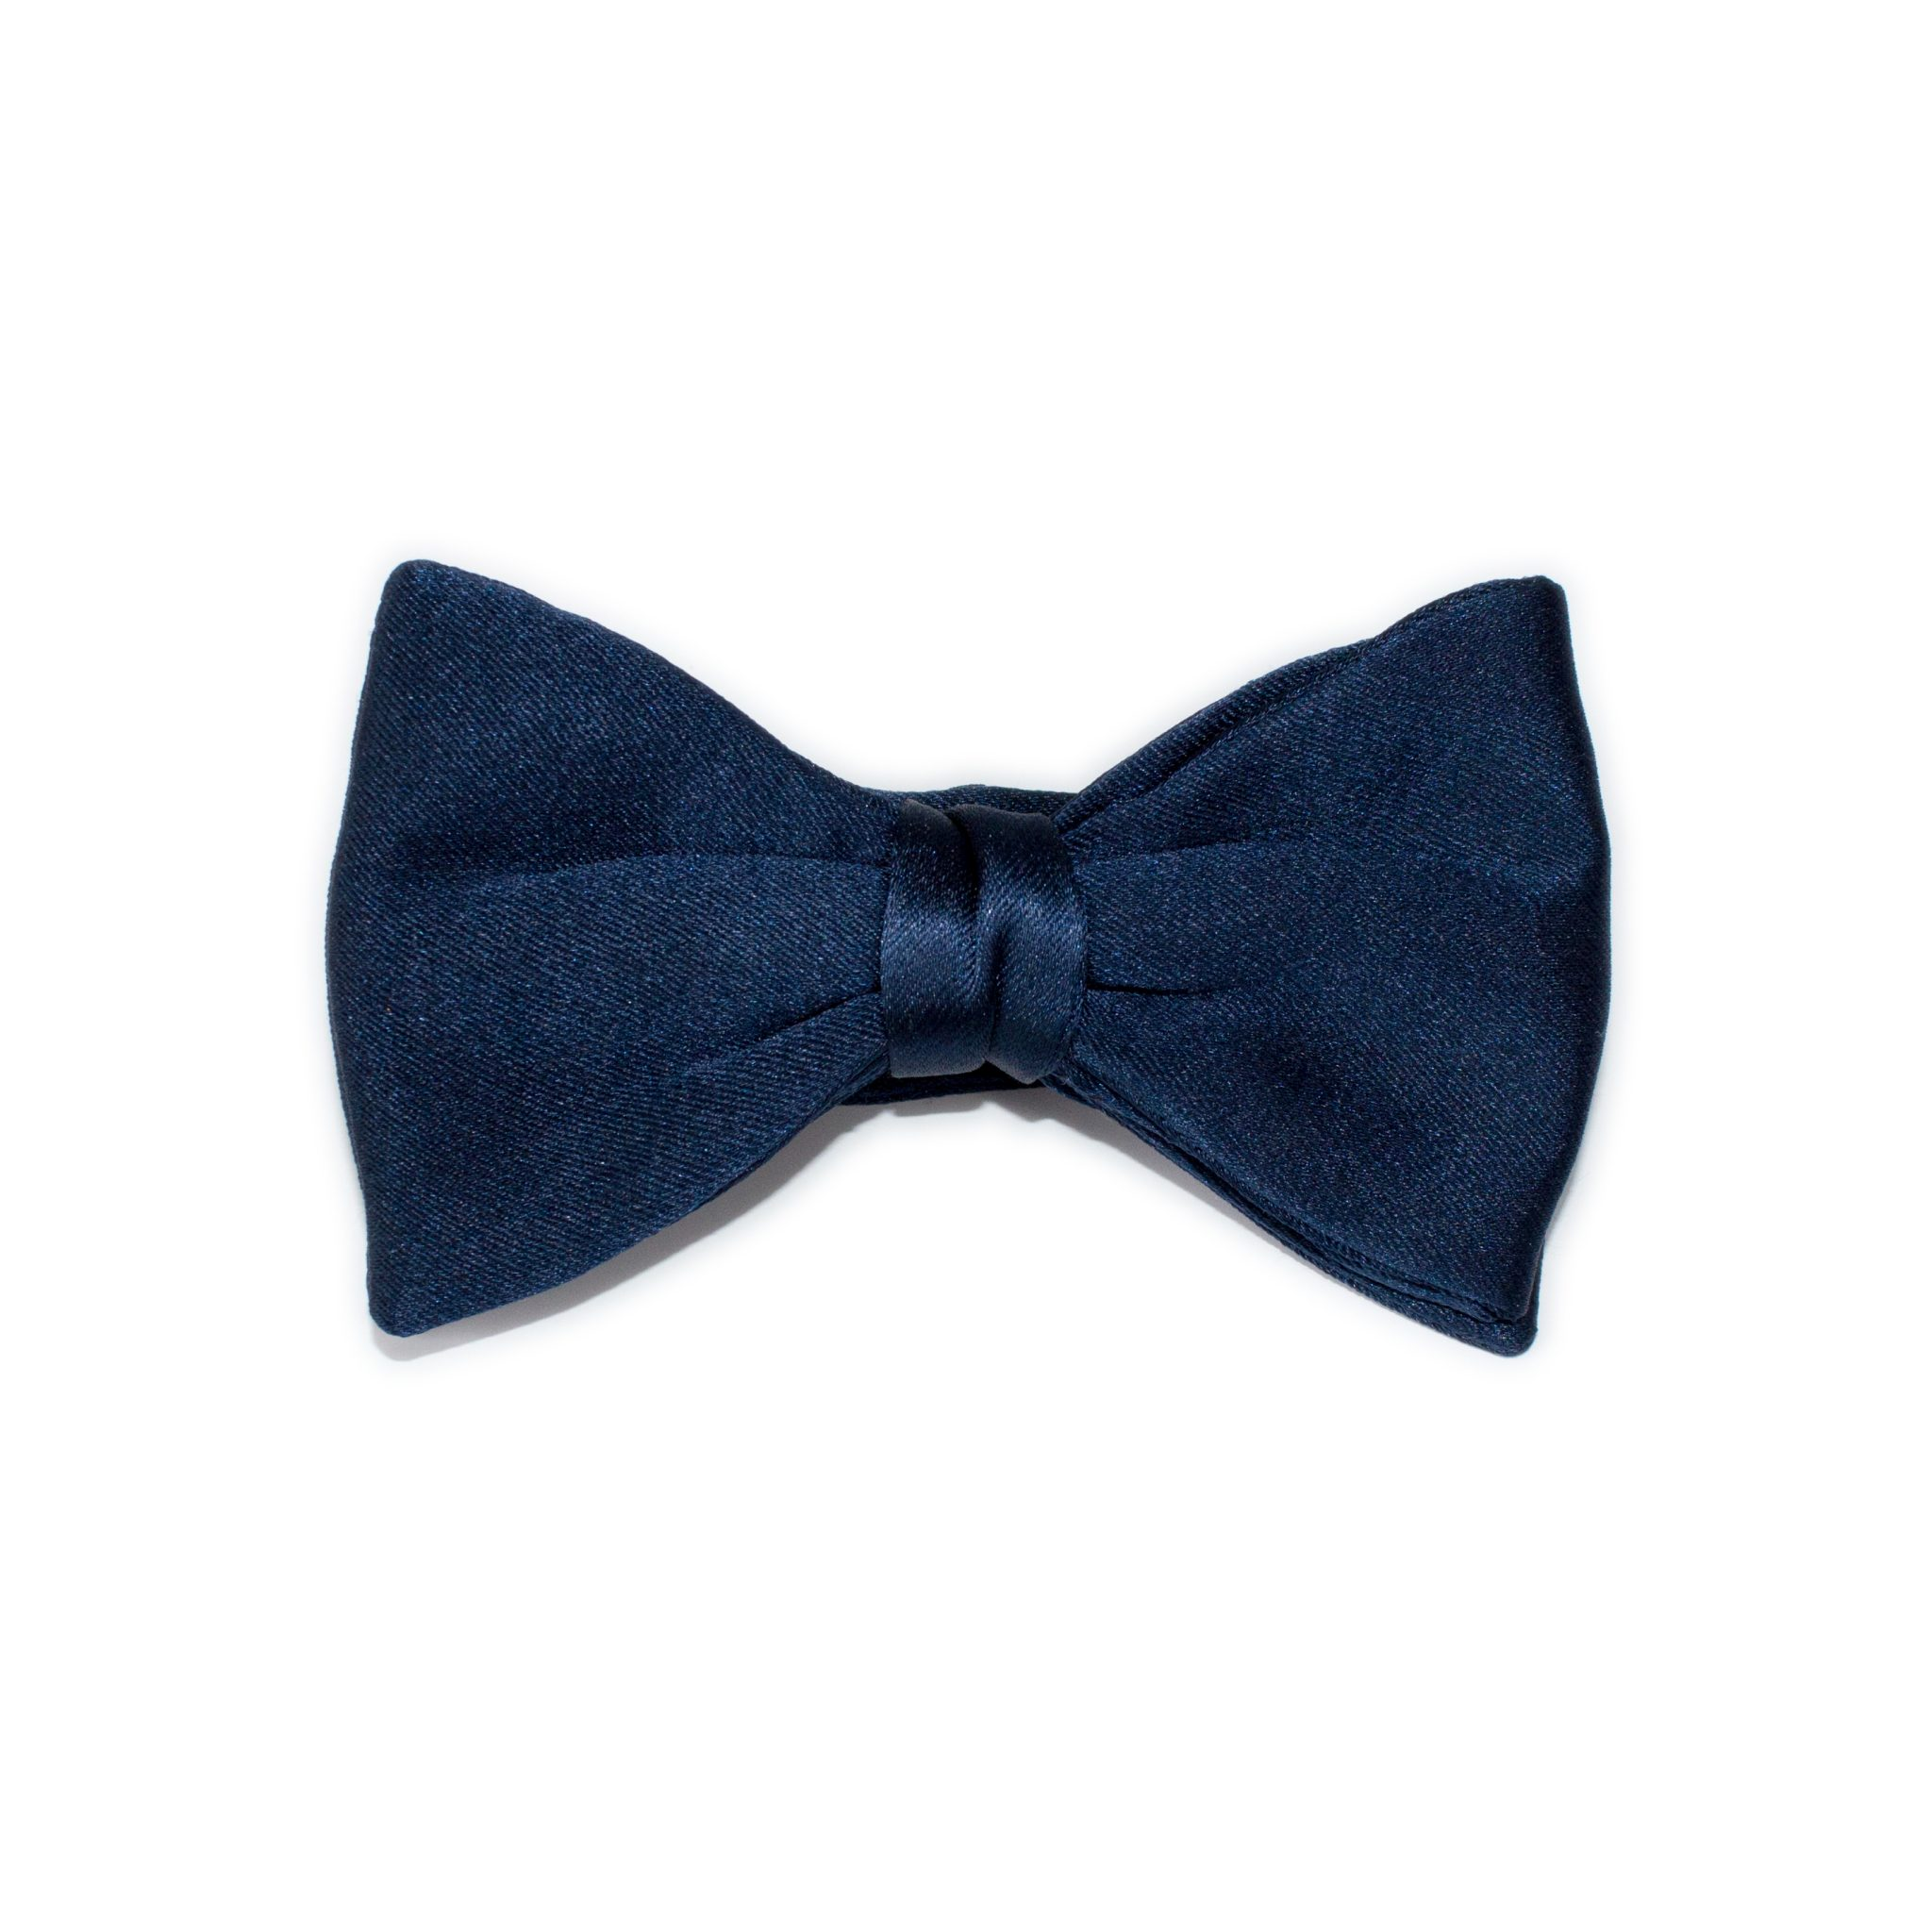 Traditional and contemporary bow ties in silk, cotton and wool from Smart Turnout. Browse our bow ties today to add some contemporary style to your wardrobe.